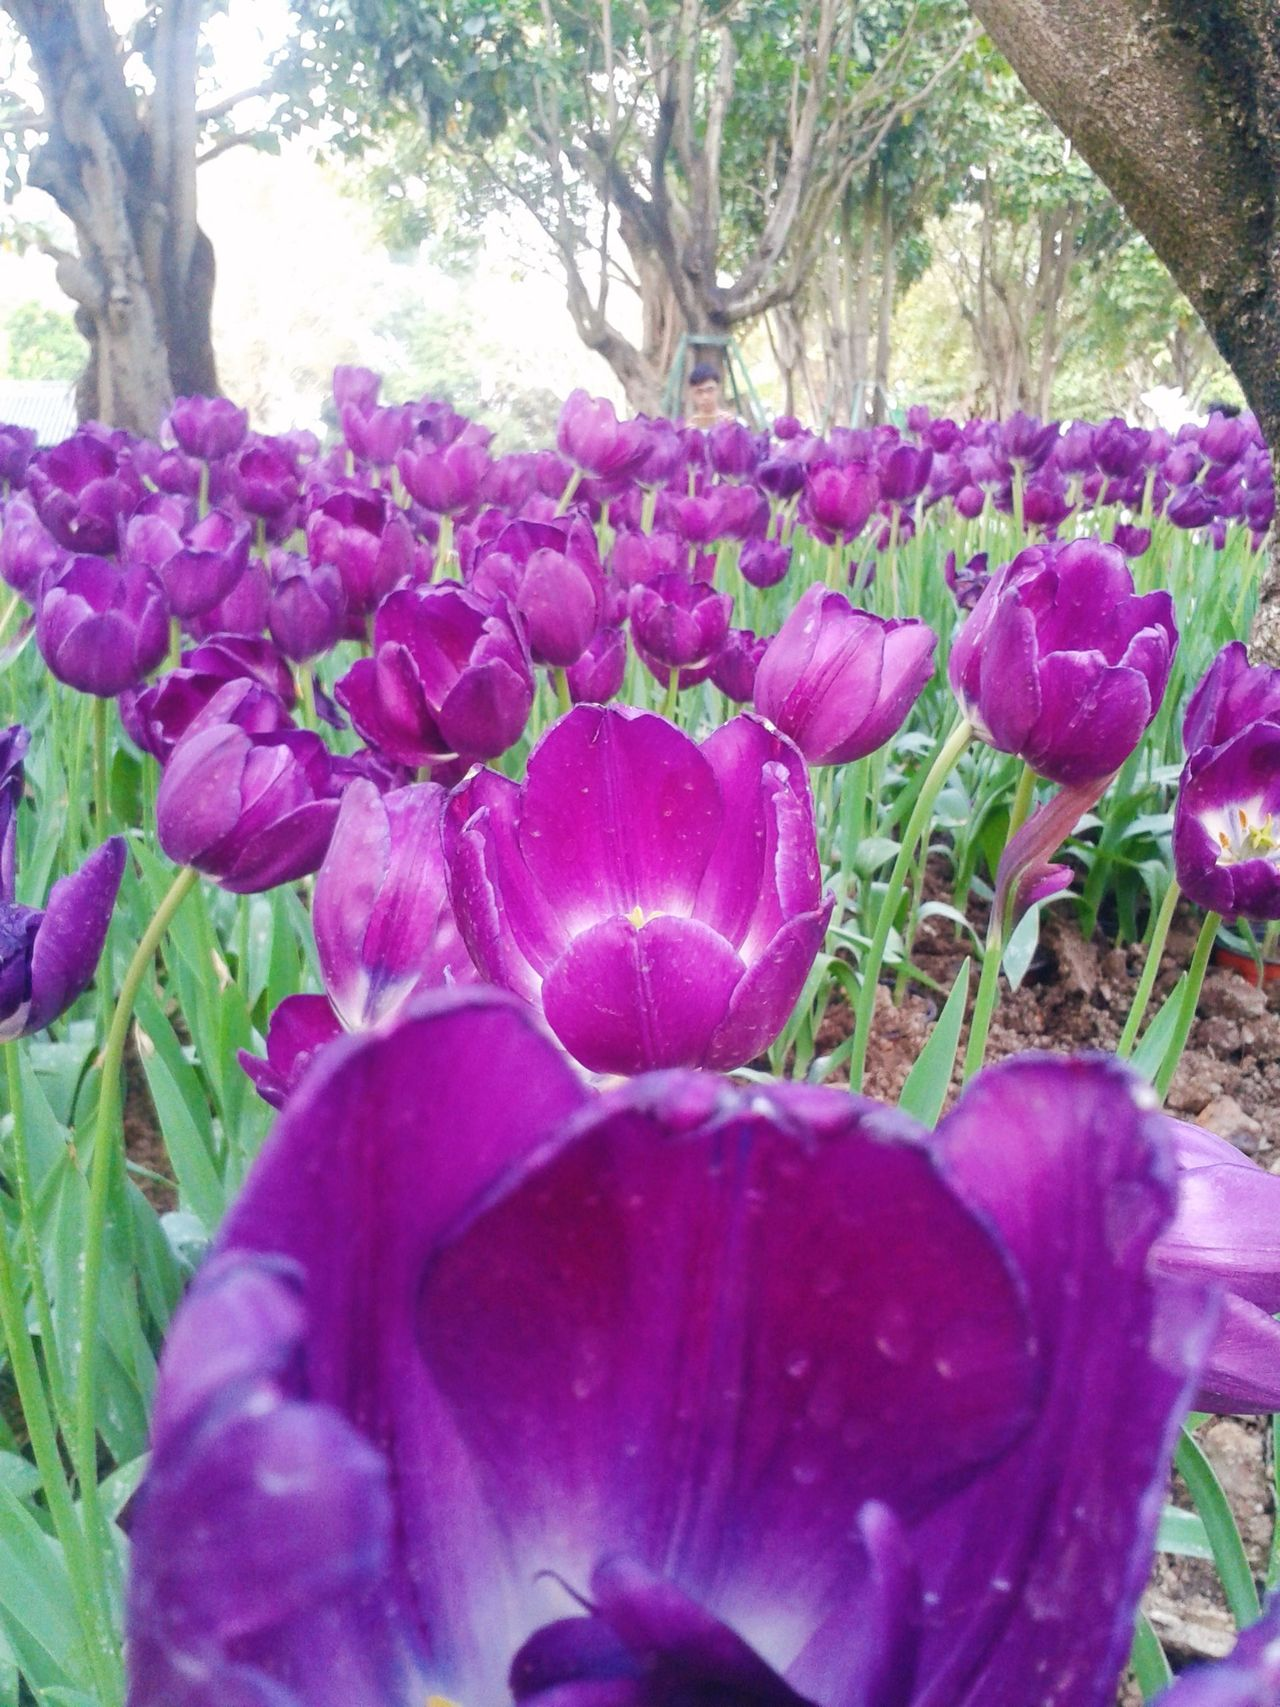 Flower Growth Nature Purple Plant Beauty In Nature Fragility Outdoors Flower Head No People Petal Tree Freshness Leaf Day Close-up Maroon Crocus